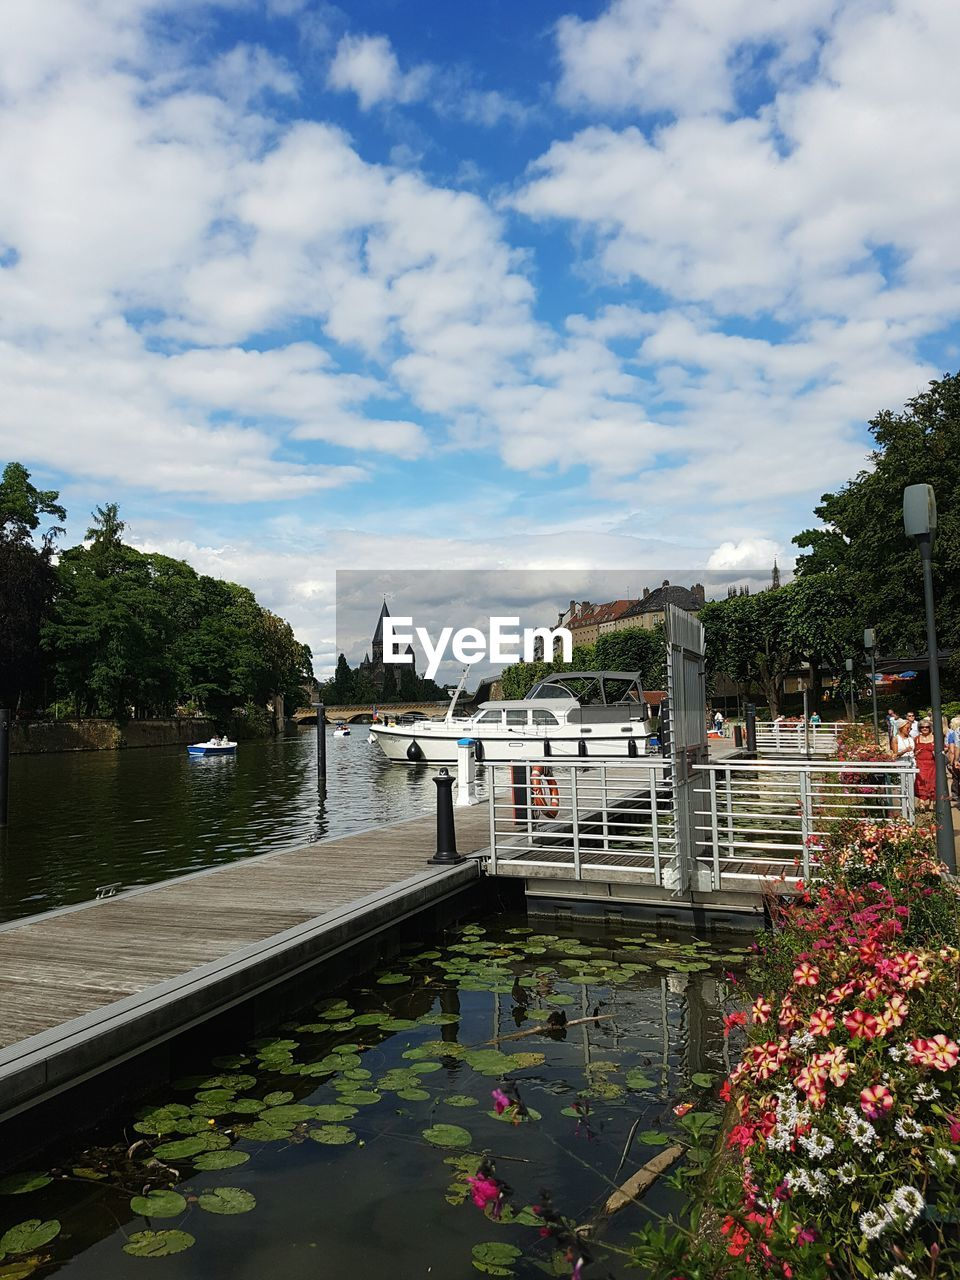 water, cloud - sky, tree, sky, architecture, built structure, day, building exterior, river, outdoors, nature, nautical vessel, beauty in nature, no people, transportation, growth, travel destinations, flower, city